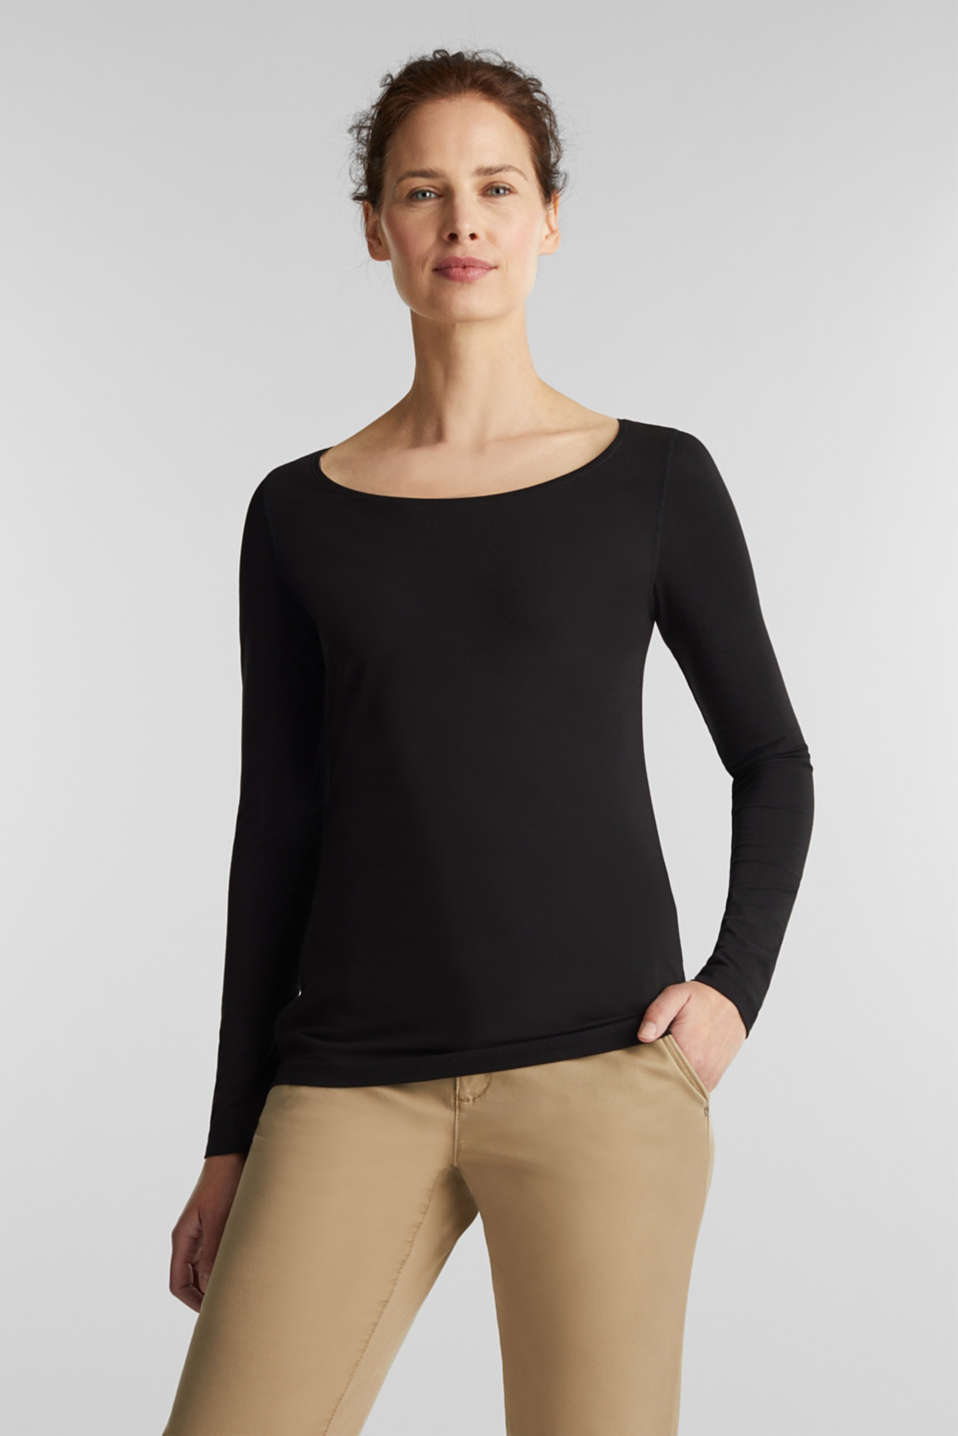 Stretch long sleeve top with a round neckline